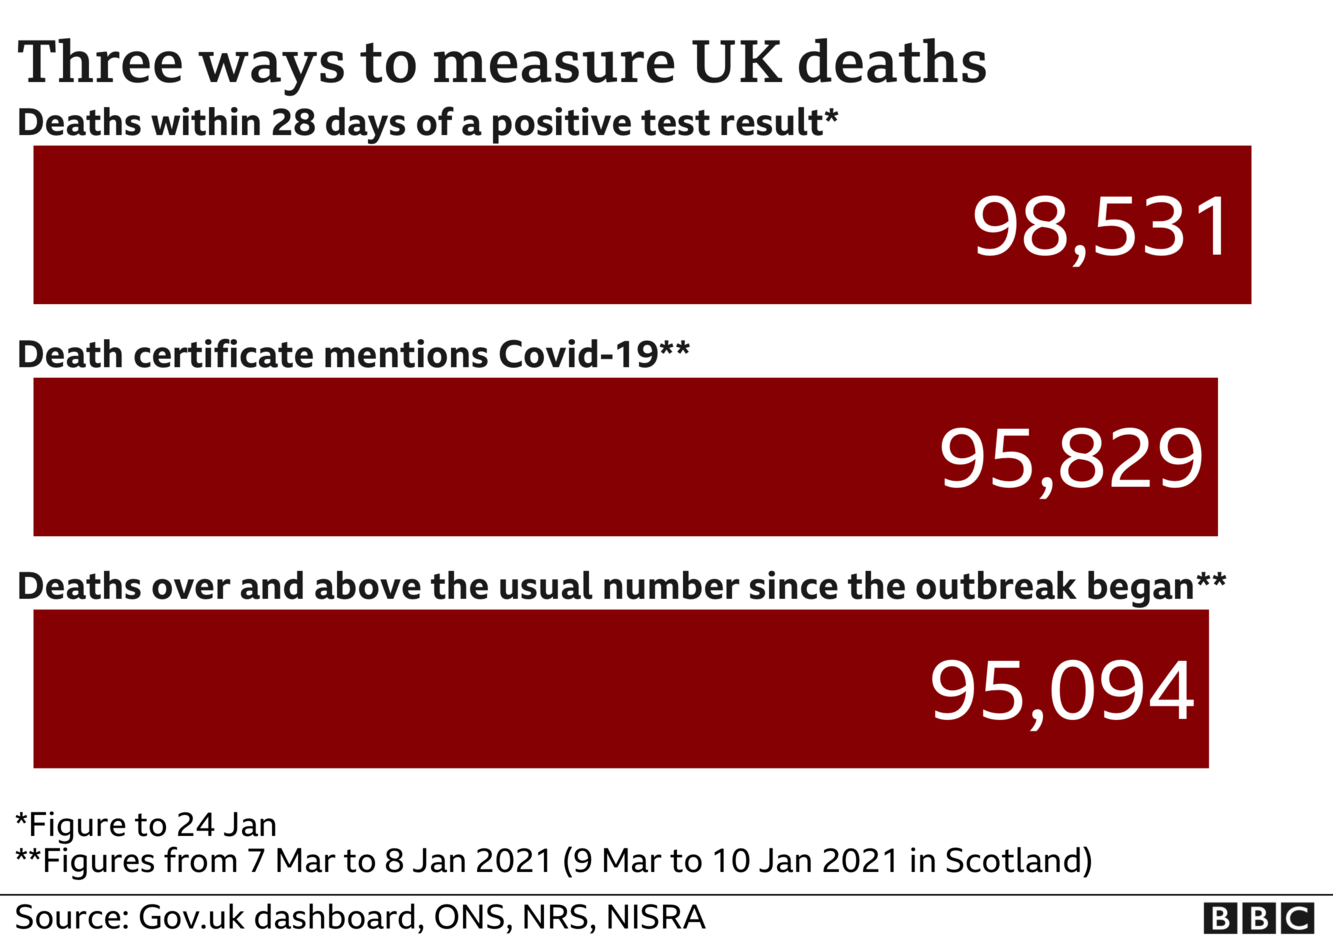 Chart showing three different totals for coronavirus deaths - the government measures all deaths within 28 days of a positive test, that total is 98,531. The ONS includes all deaths where coronavirus was mentioned on the death certificate, that total is 95,829 and the final total includes all deaths over and above the average for the time of year and that total is now 95,094